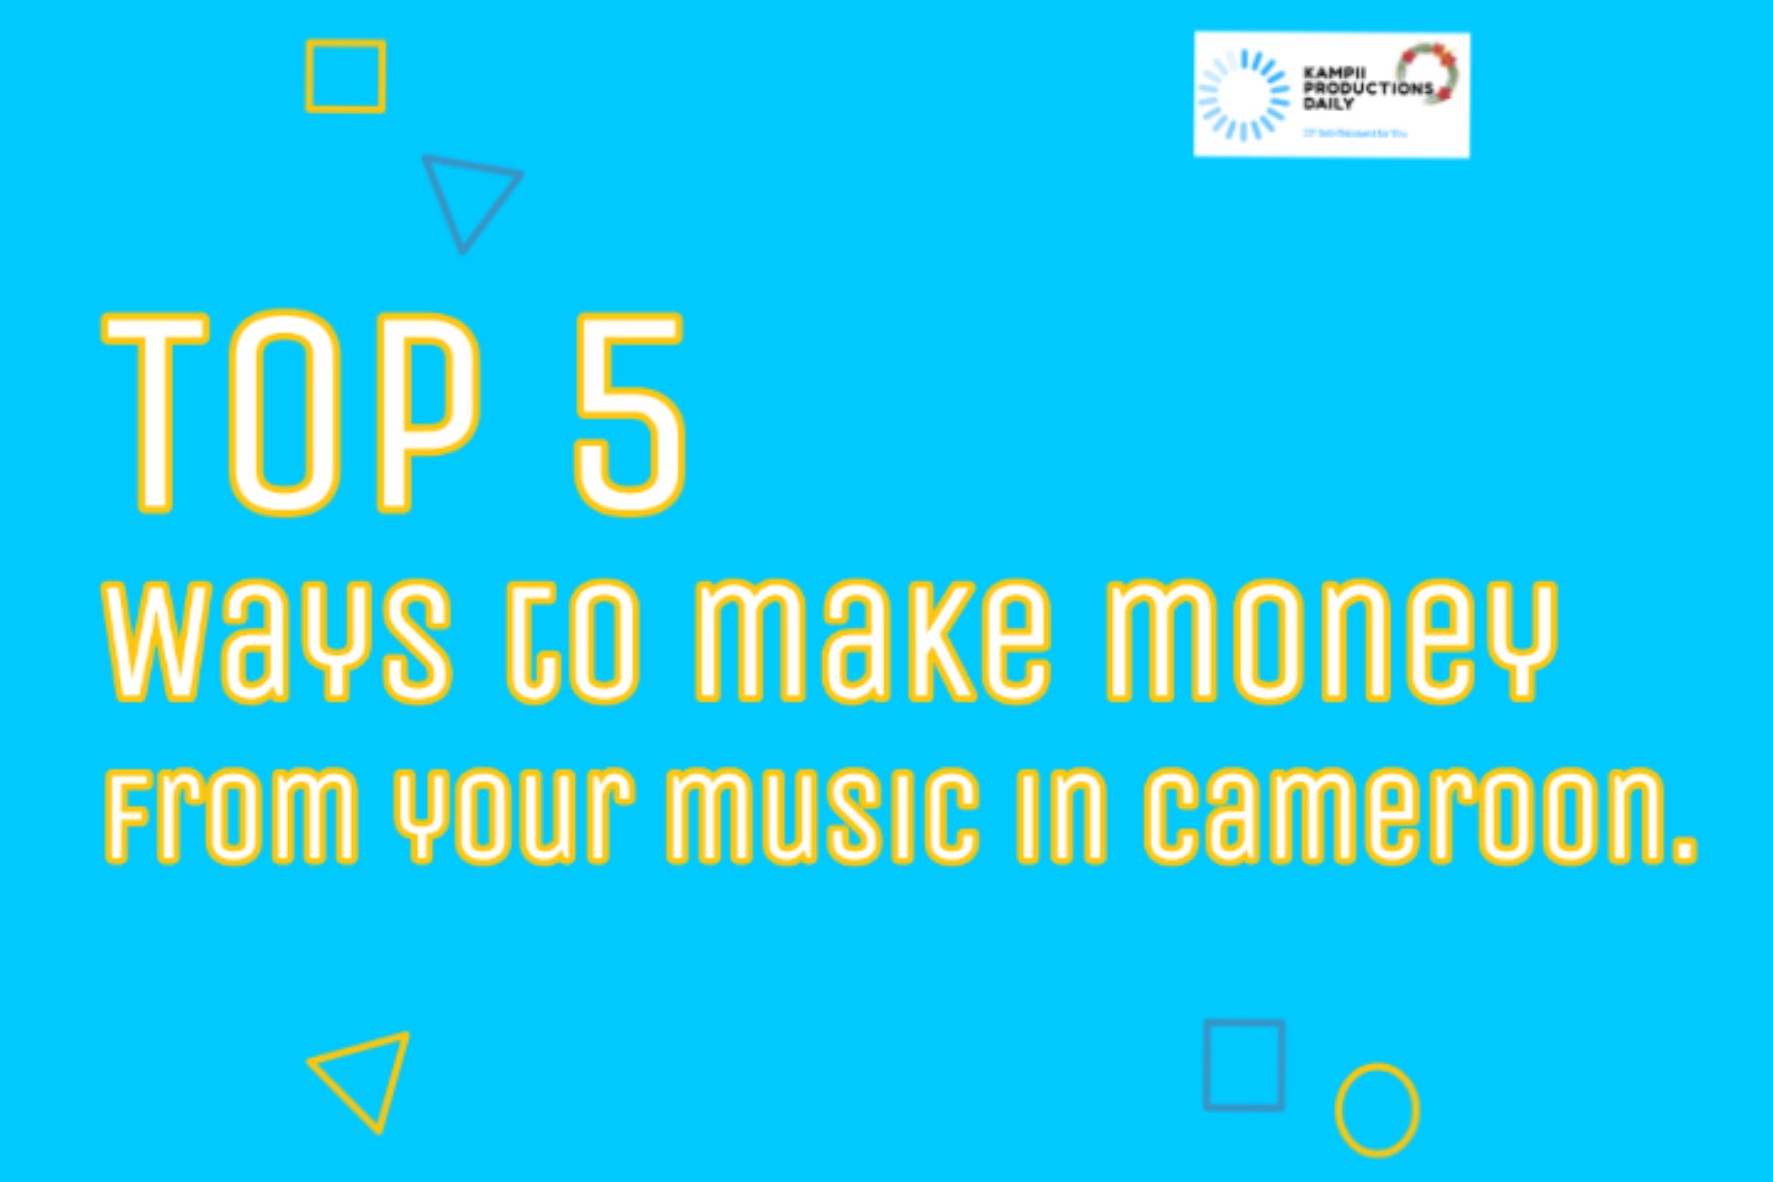 Top 5 ways to make money with your music in Cameroon.